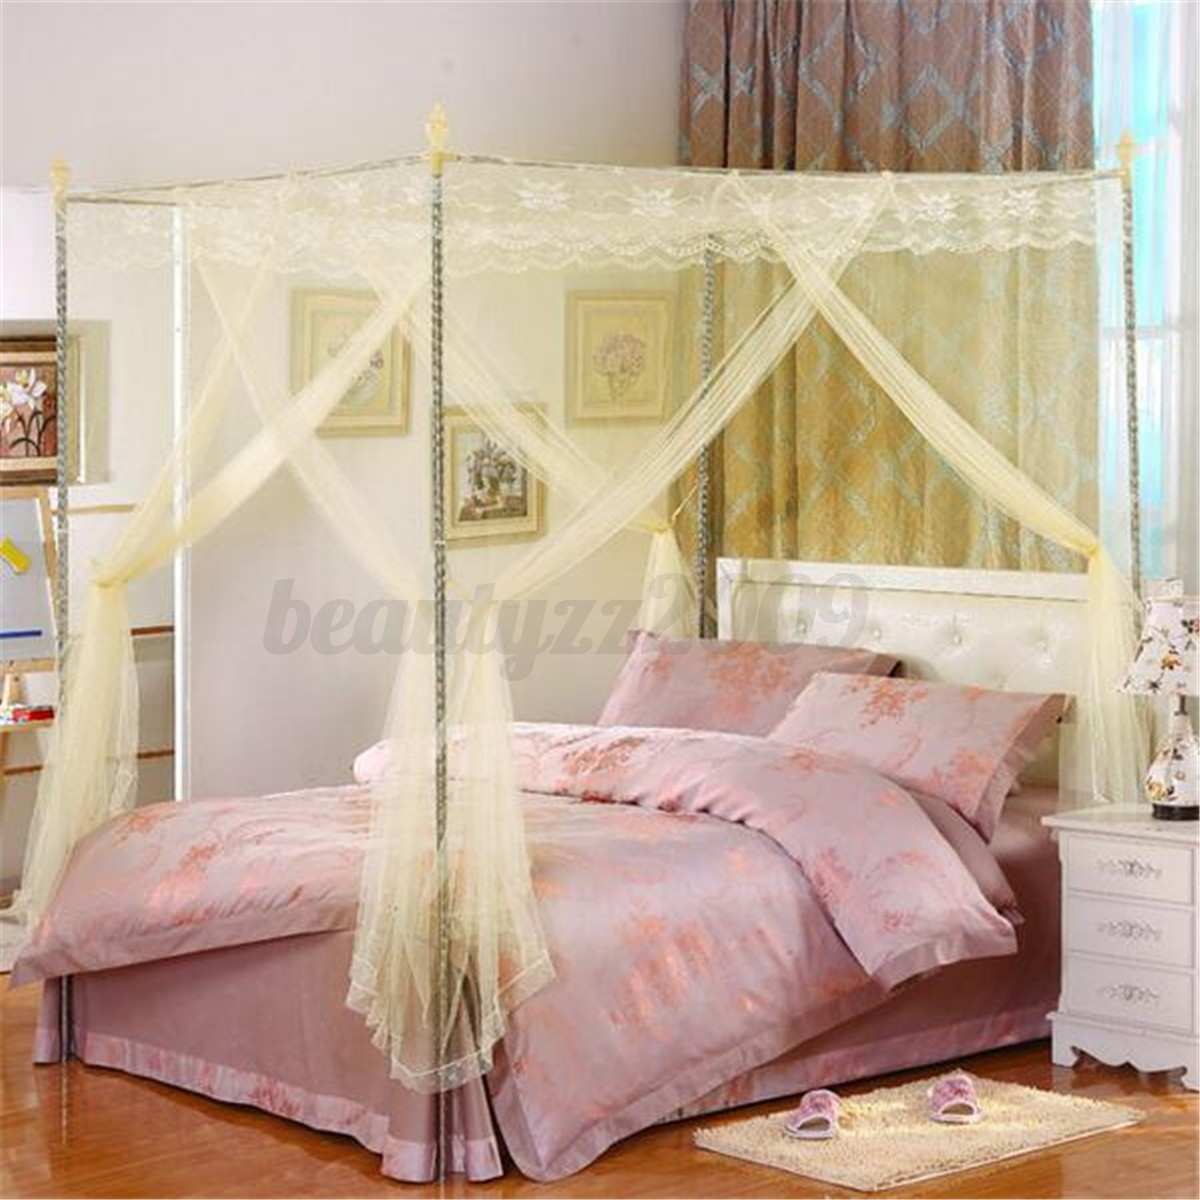 Elegant Round Curtain Bed Mosquito Net Canopy Netting